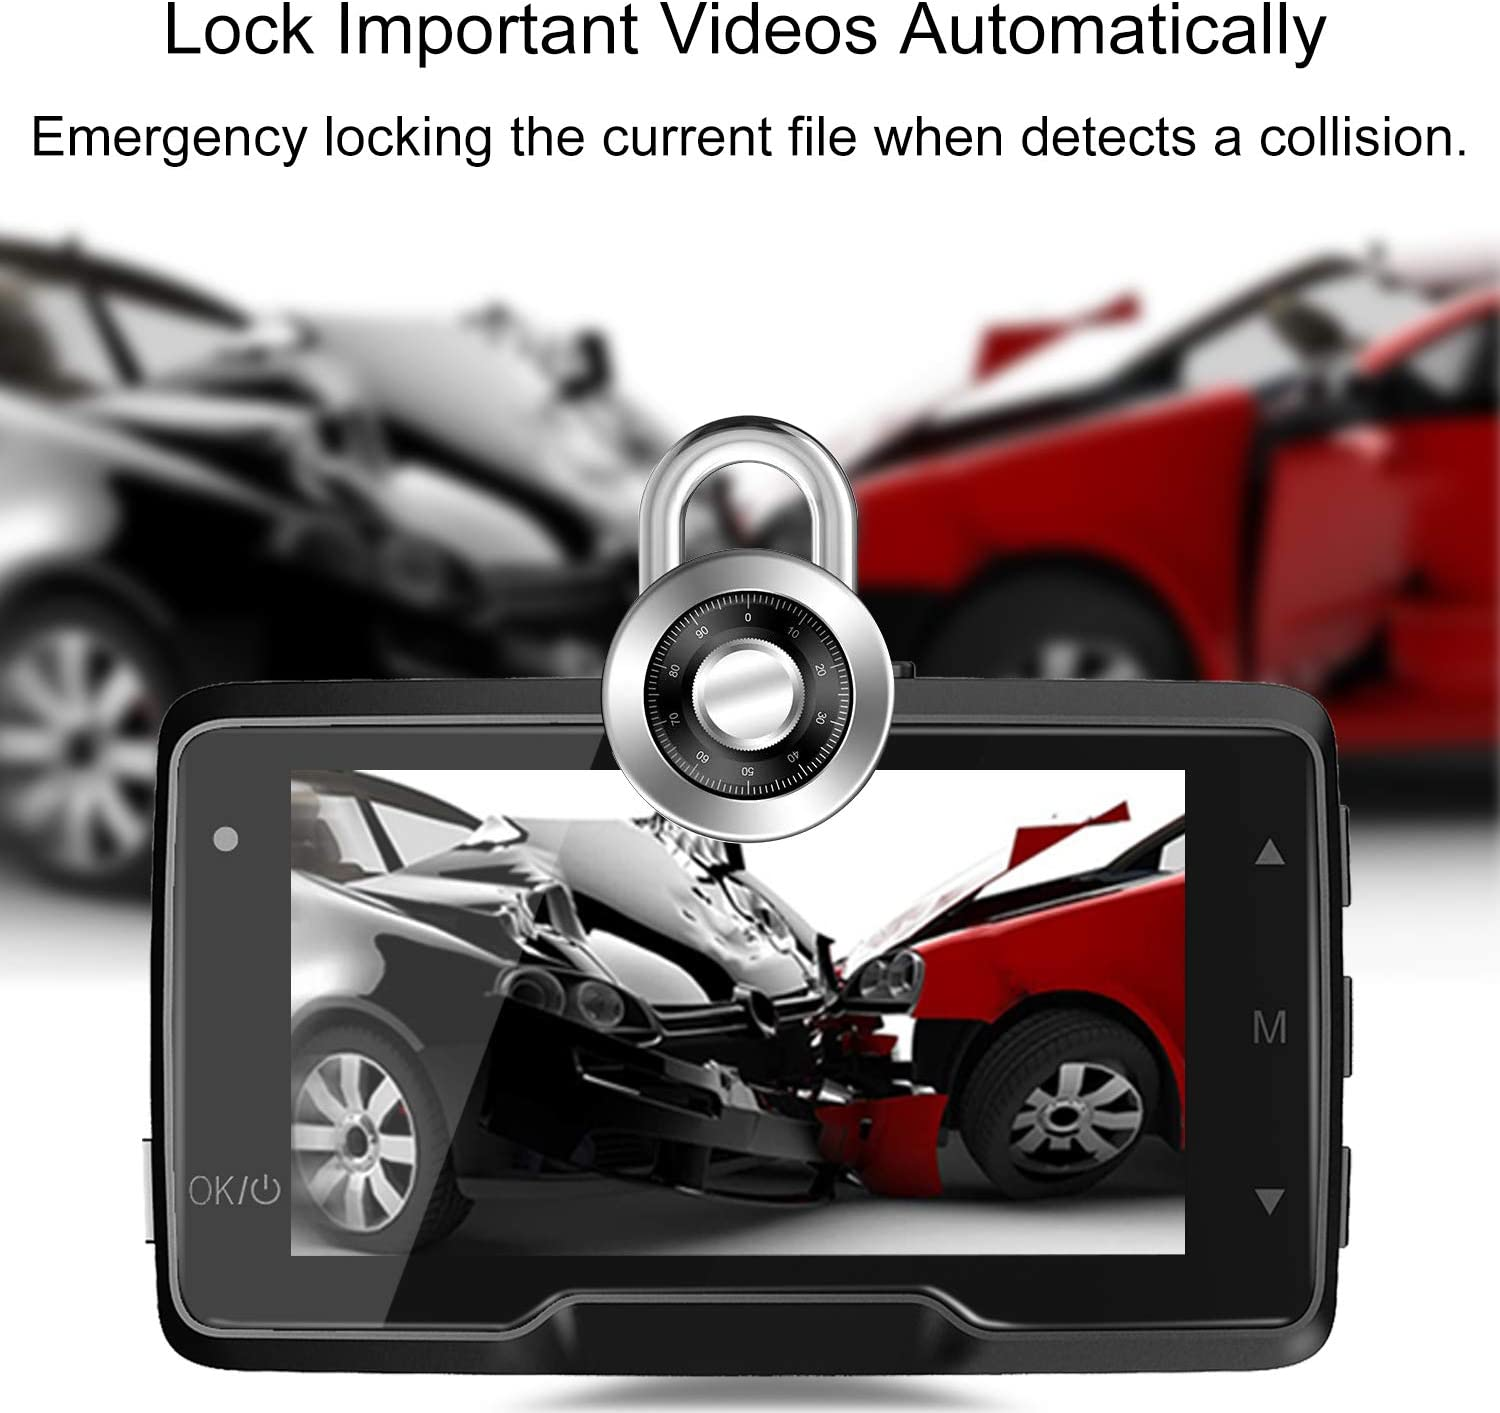 GOODTS Dash Cam 1080P FHD Car Camera Recorder 2.45 Inch LCD Screen 170/°Wide Angle Dash Camera for Cars with G-Sensor Loop Recording WDR Motion Detection Night Vision.